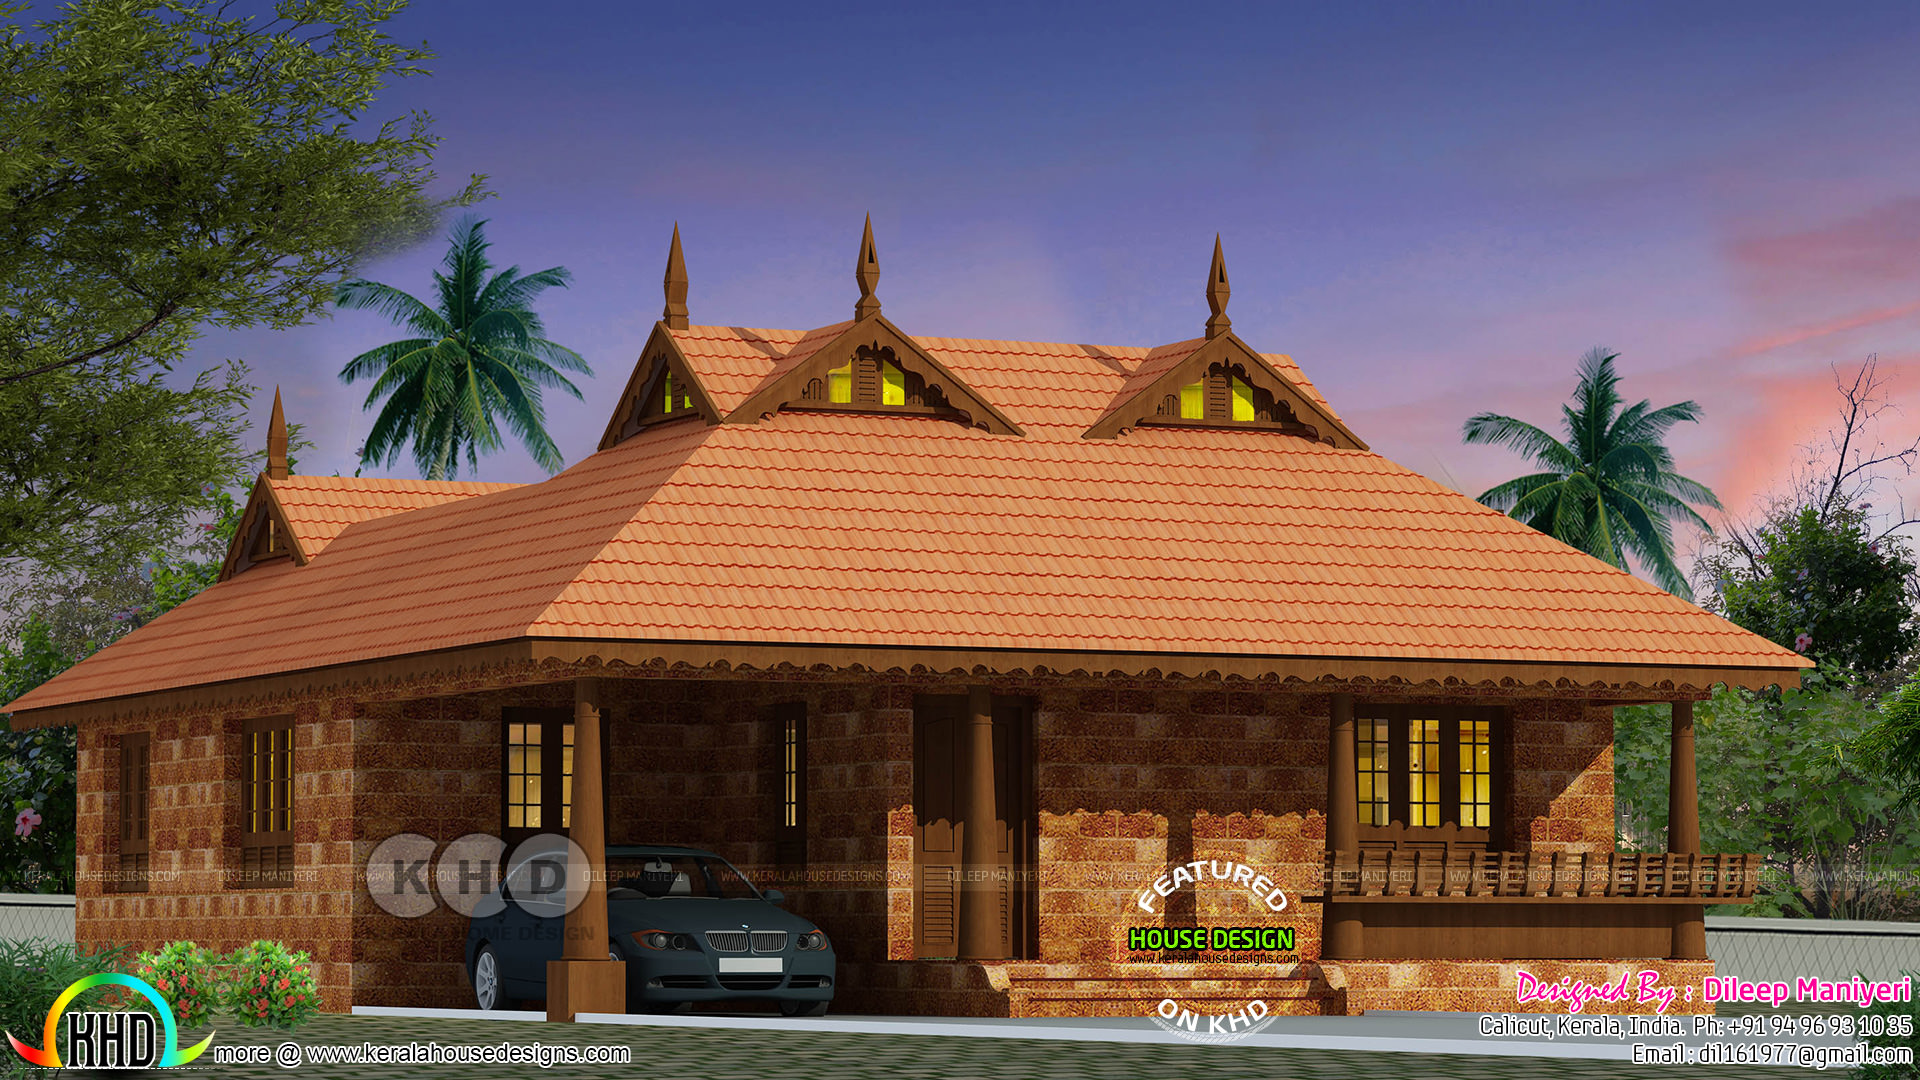 3 Bedroom Tradition Kerala Home With Nadumuttam Part - 23: 2 Bedroom Tradition Kerala Home With Nadumuttam